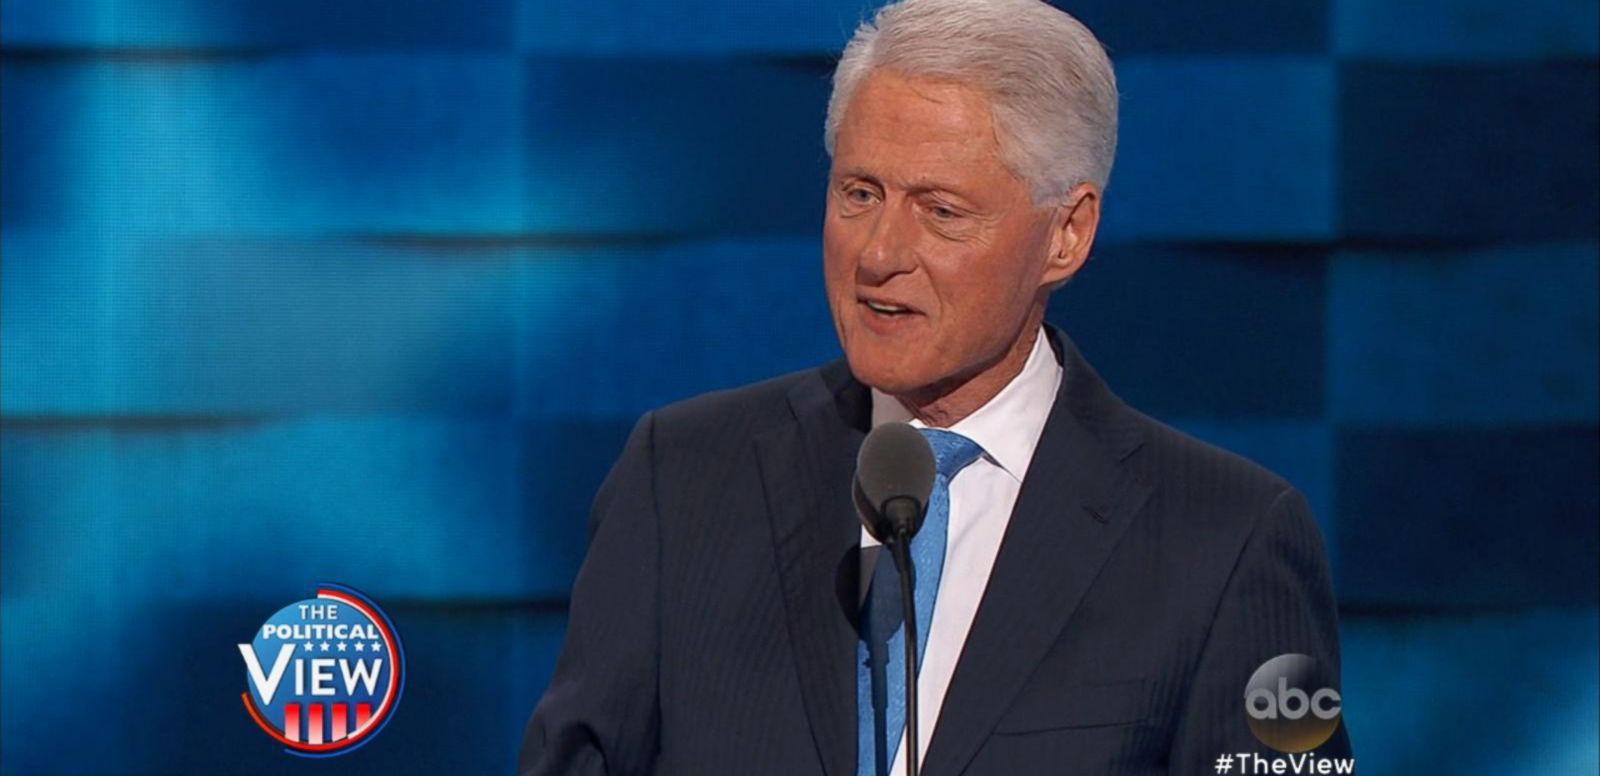 VIDEO: Bill Clinton Delivers Powerful Speech About His Wife at DNC